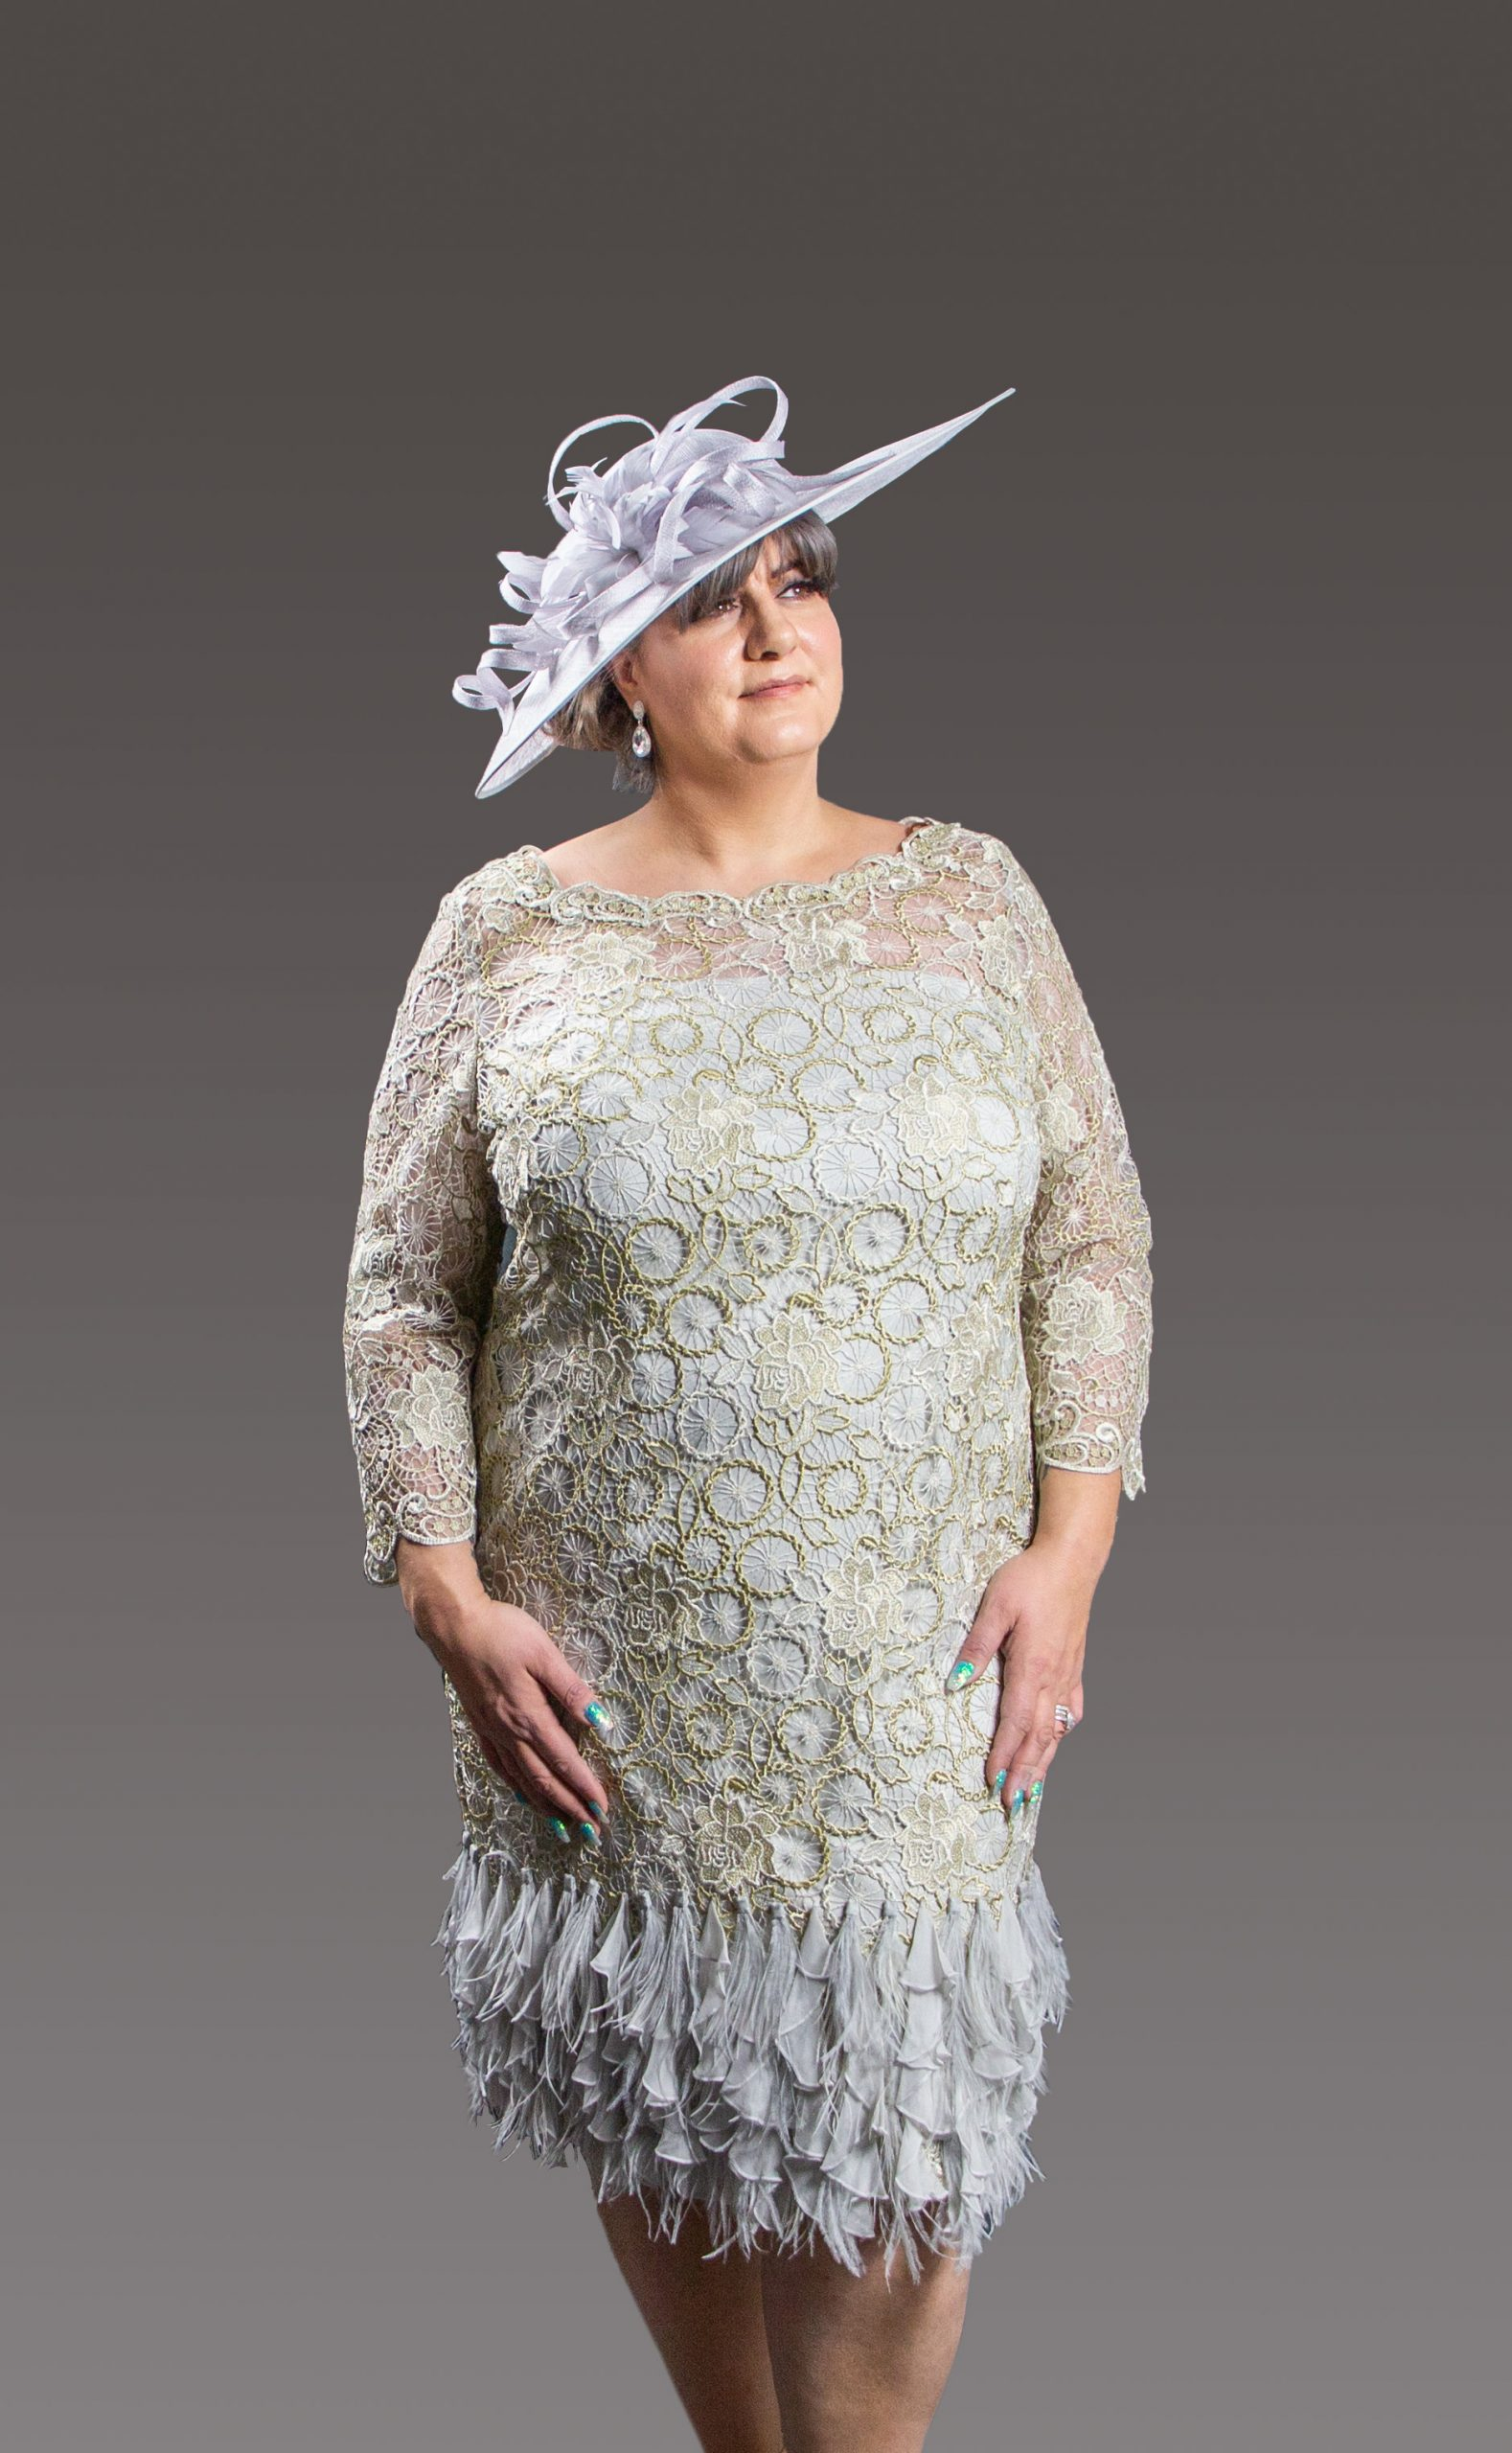 This stunning dress has been made by the finest ateliers and as such it is embellished y hand so no two pieces are alike. Fully lined this exquisite dress has one of the designers signature trademark of feathers around the bottom and 3/4 length sleeves. Available in so many choices of colour there is a shade to suit all skin tones. Gold - 3015 (003608)